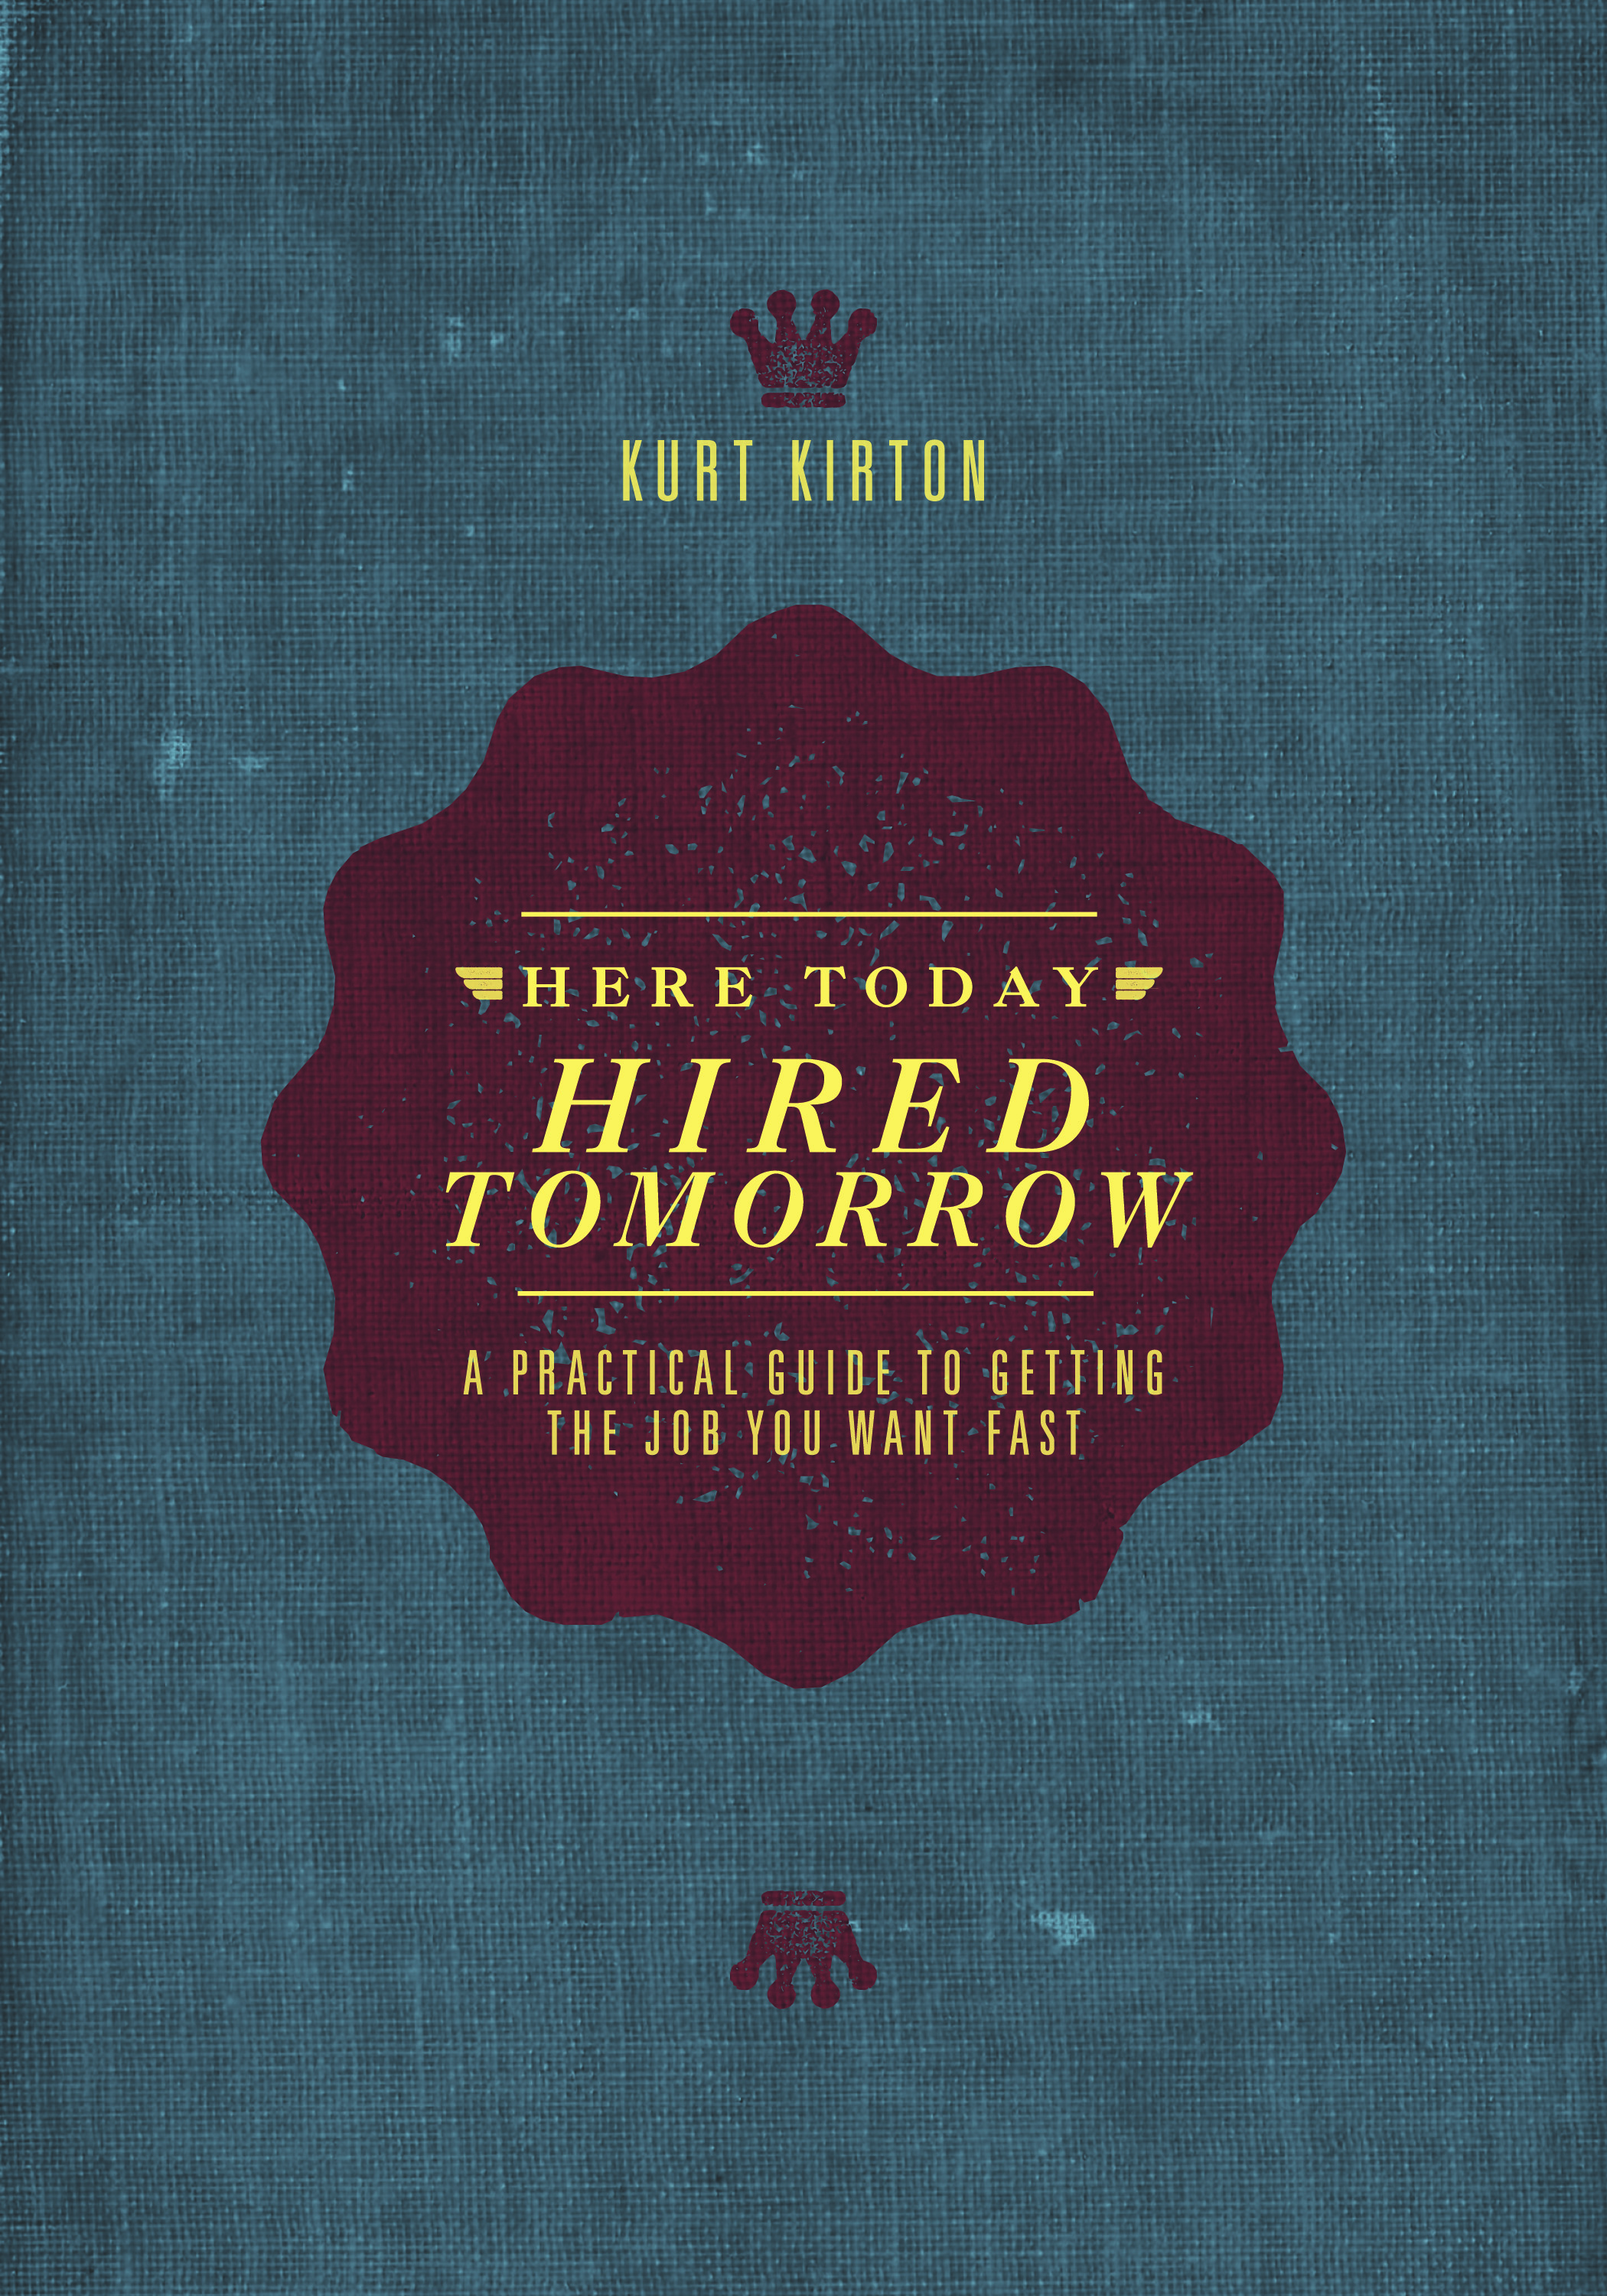 Here Today, Hired Tomorrow book cover